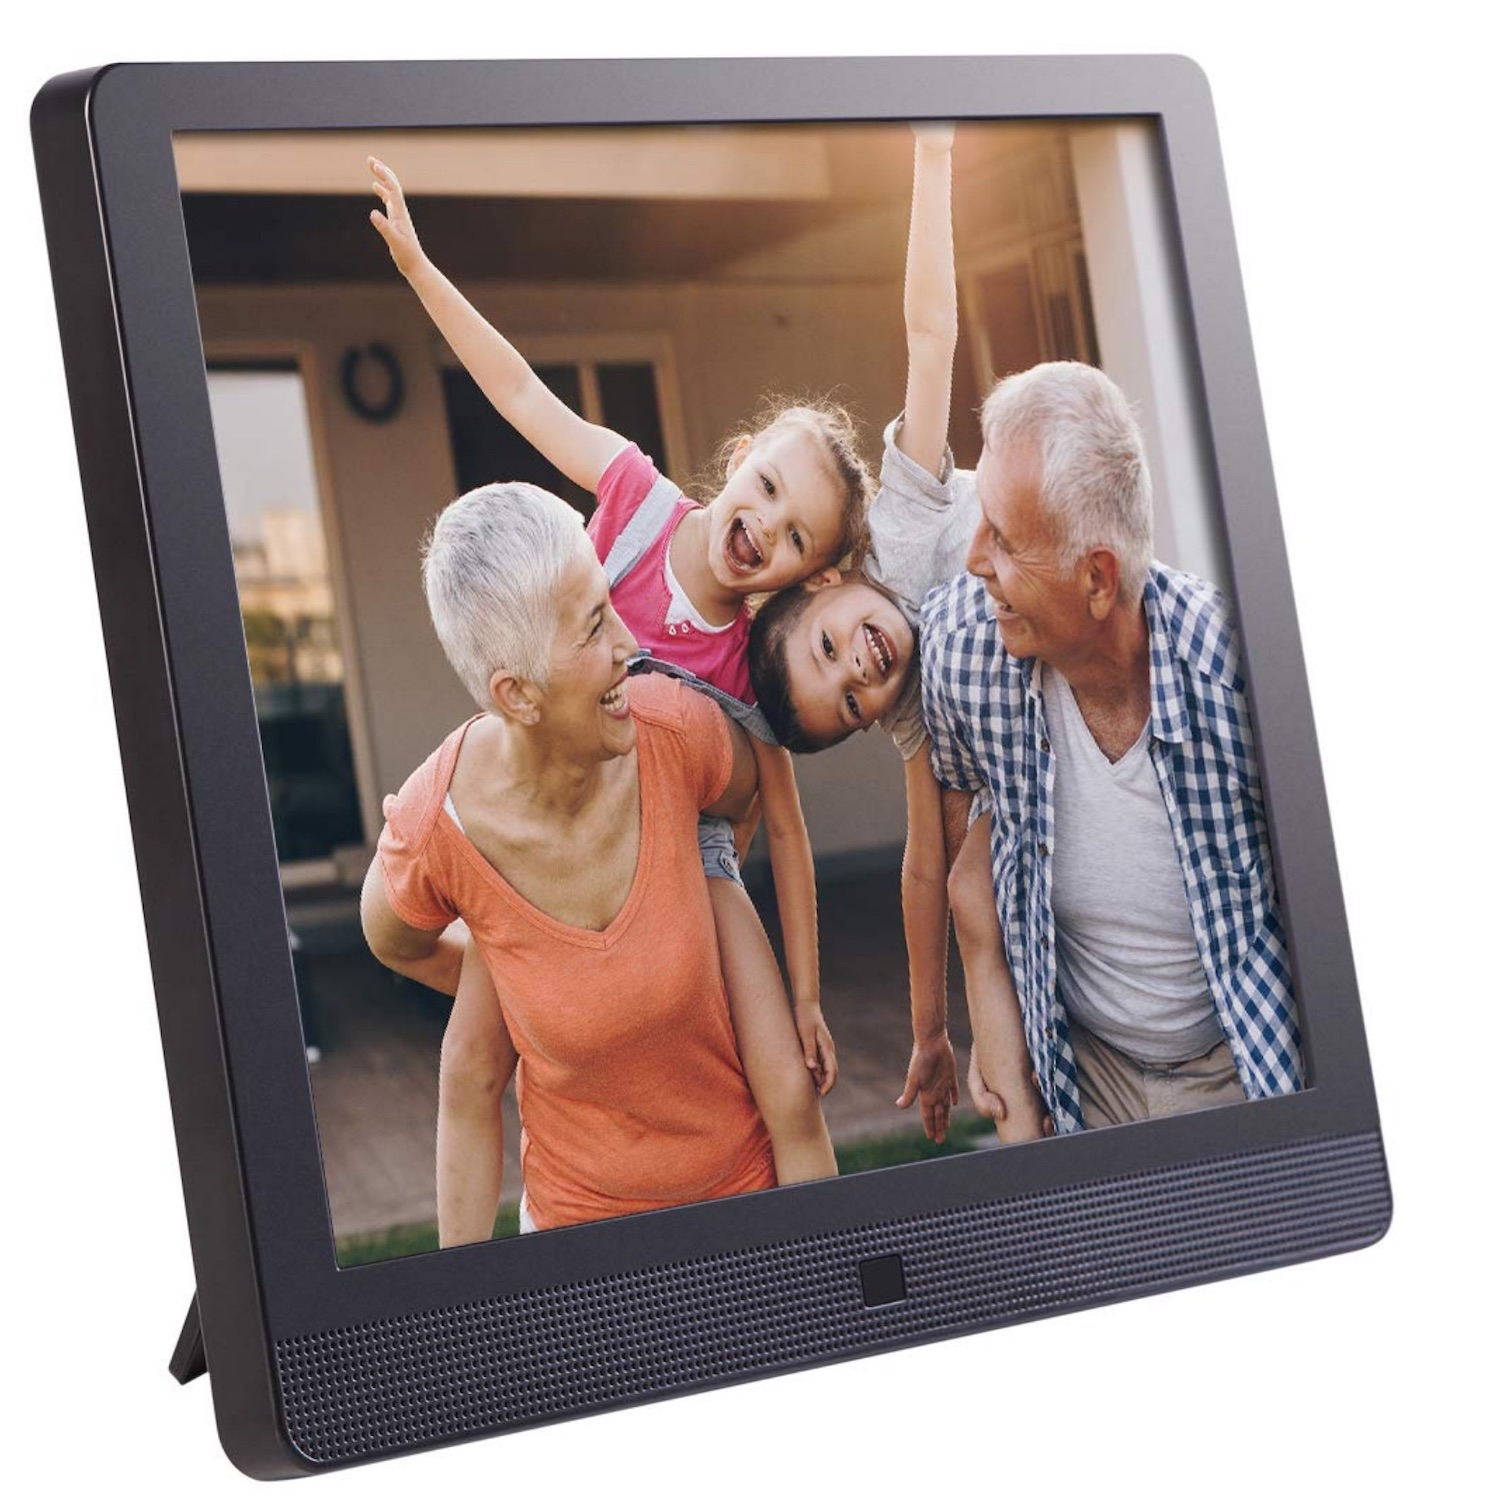 Image: The Pix-Star 15-inch frame lets you see your photos without printing them.